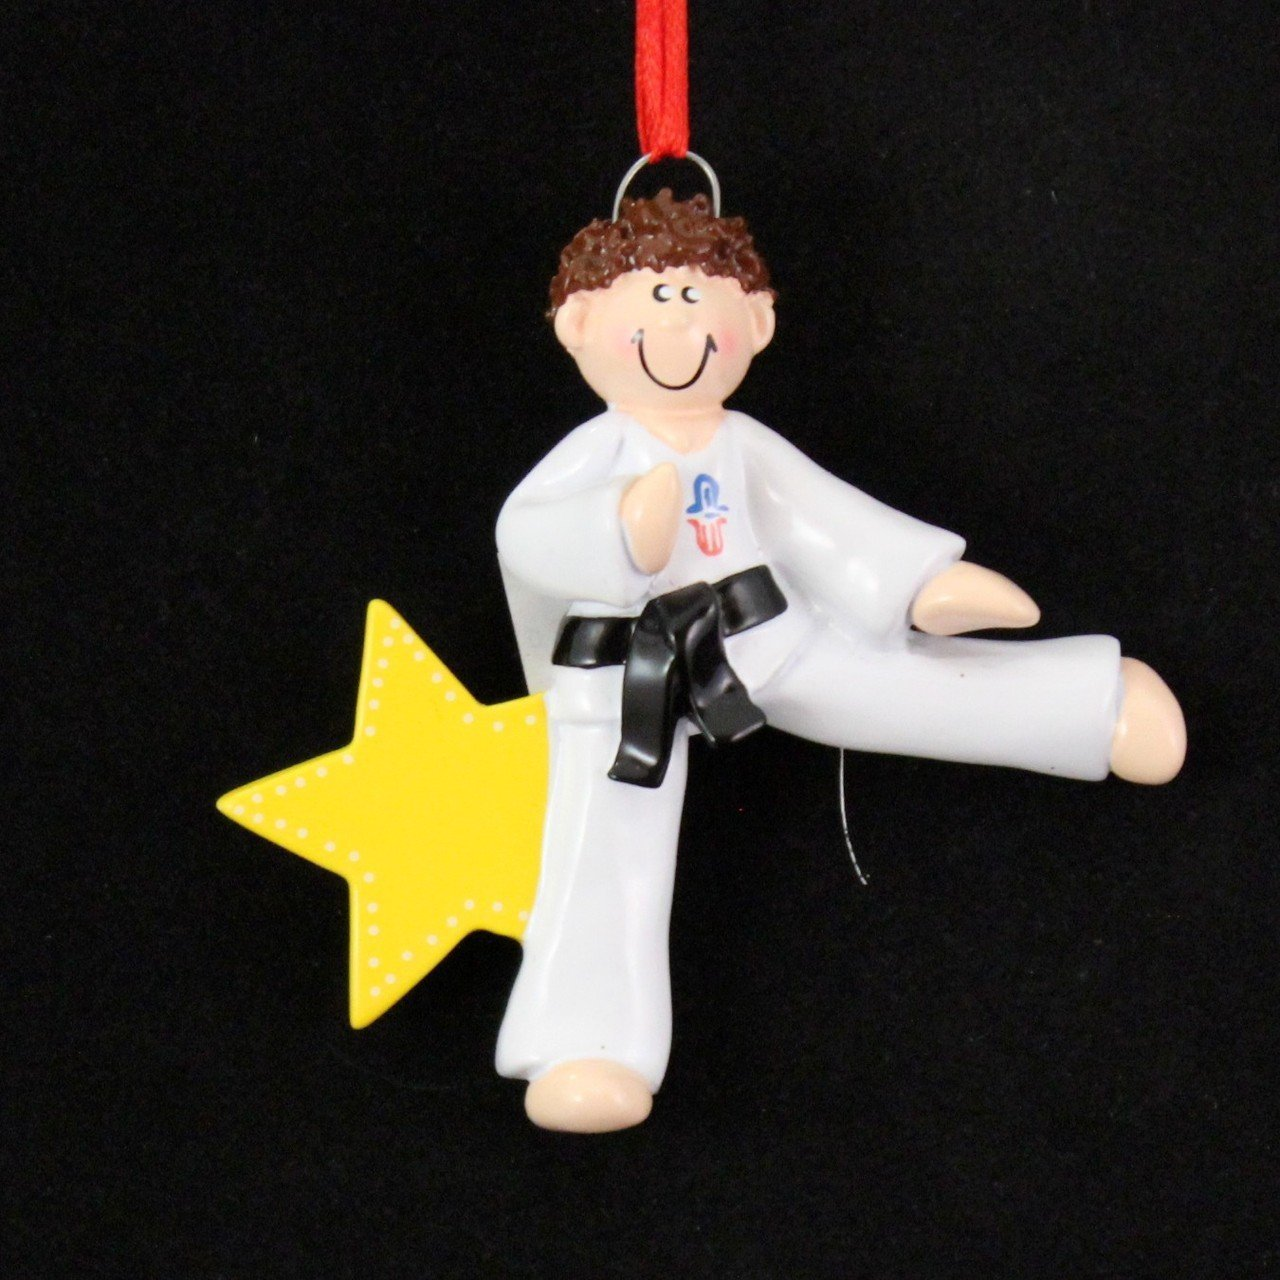 Karate christmas ornament - Amazon Com 8273 Karate Boy Brown Hand Personalized Christmas Ornament By Rudolph And Me Home Kitchen